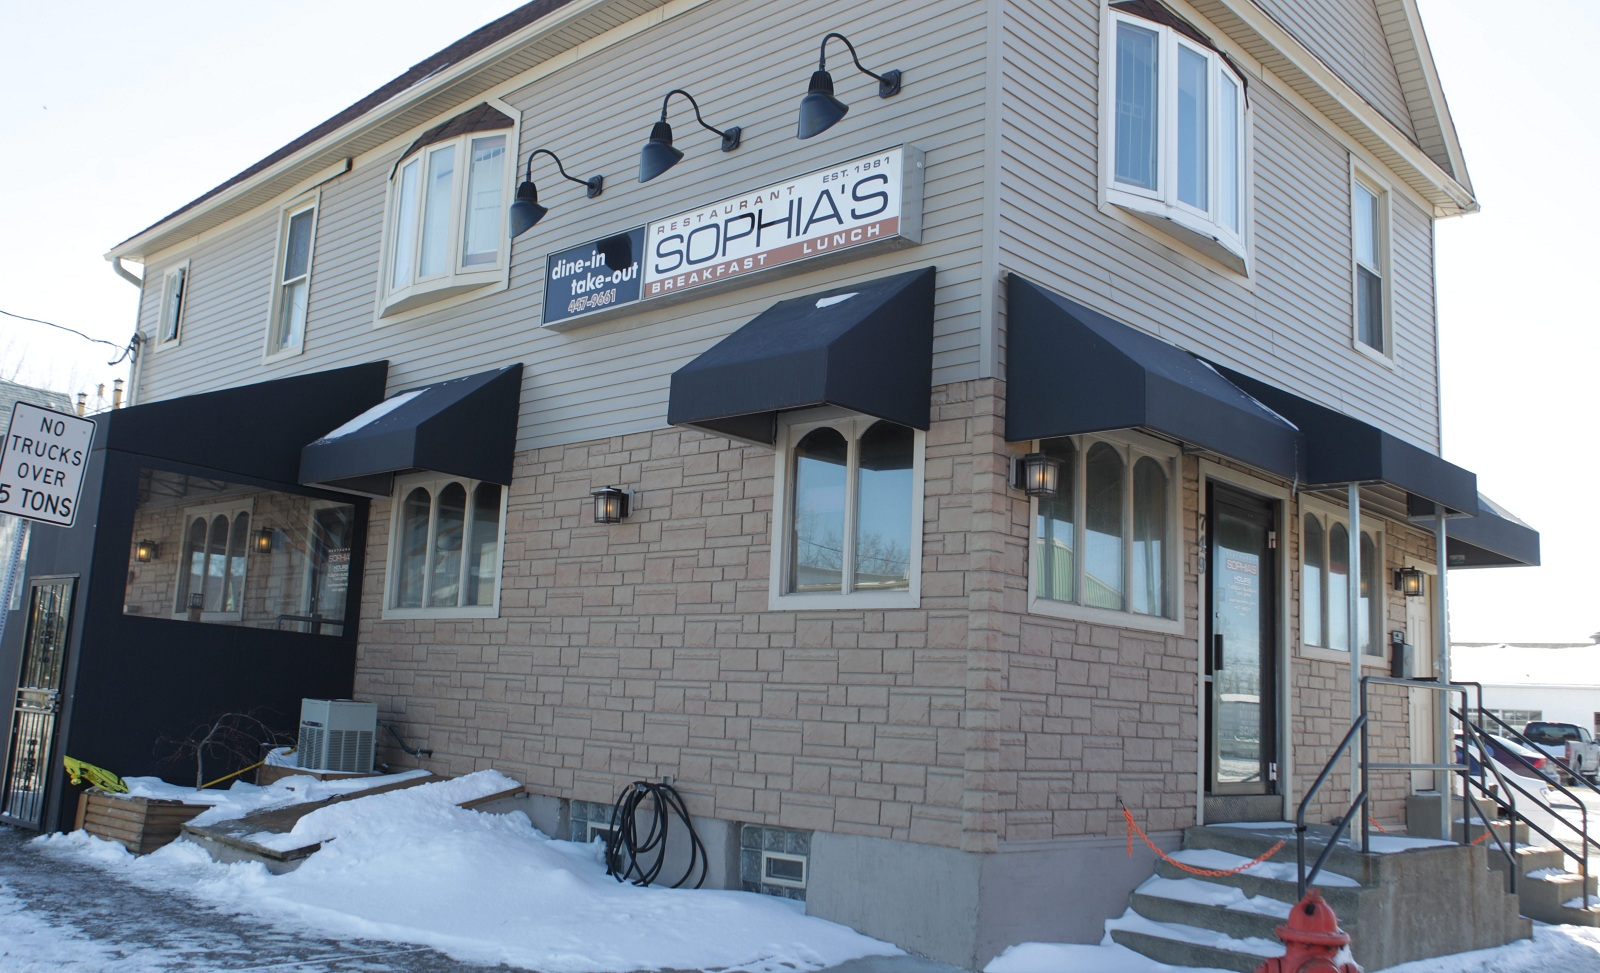 Breakfast destination Sophia's restaurant closes Sundays, for a good on